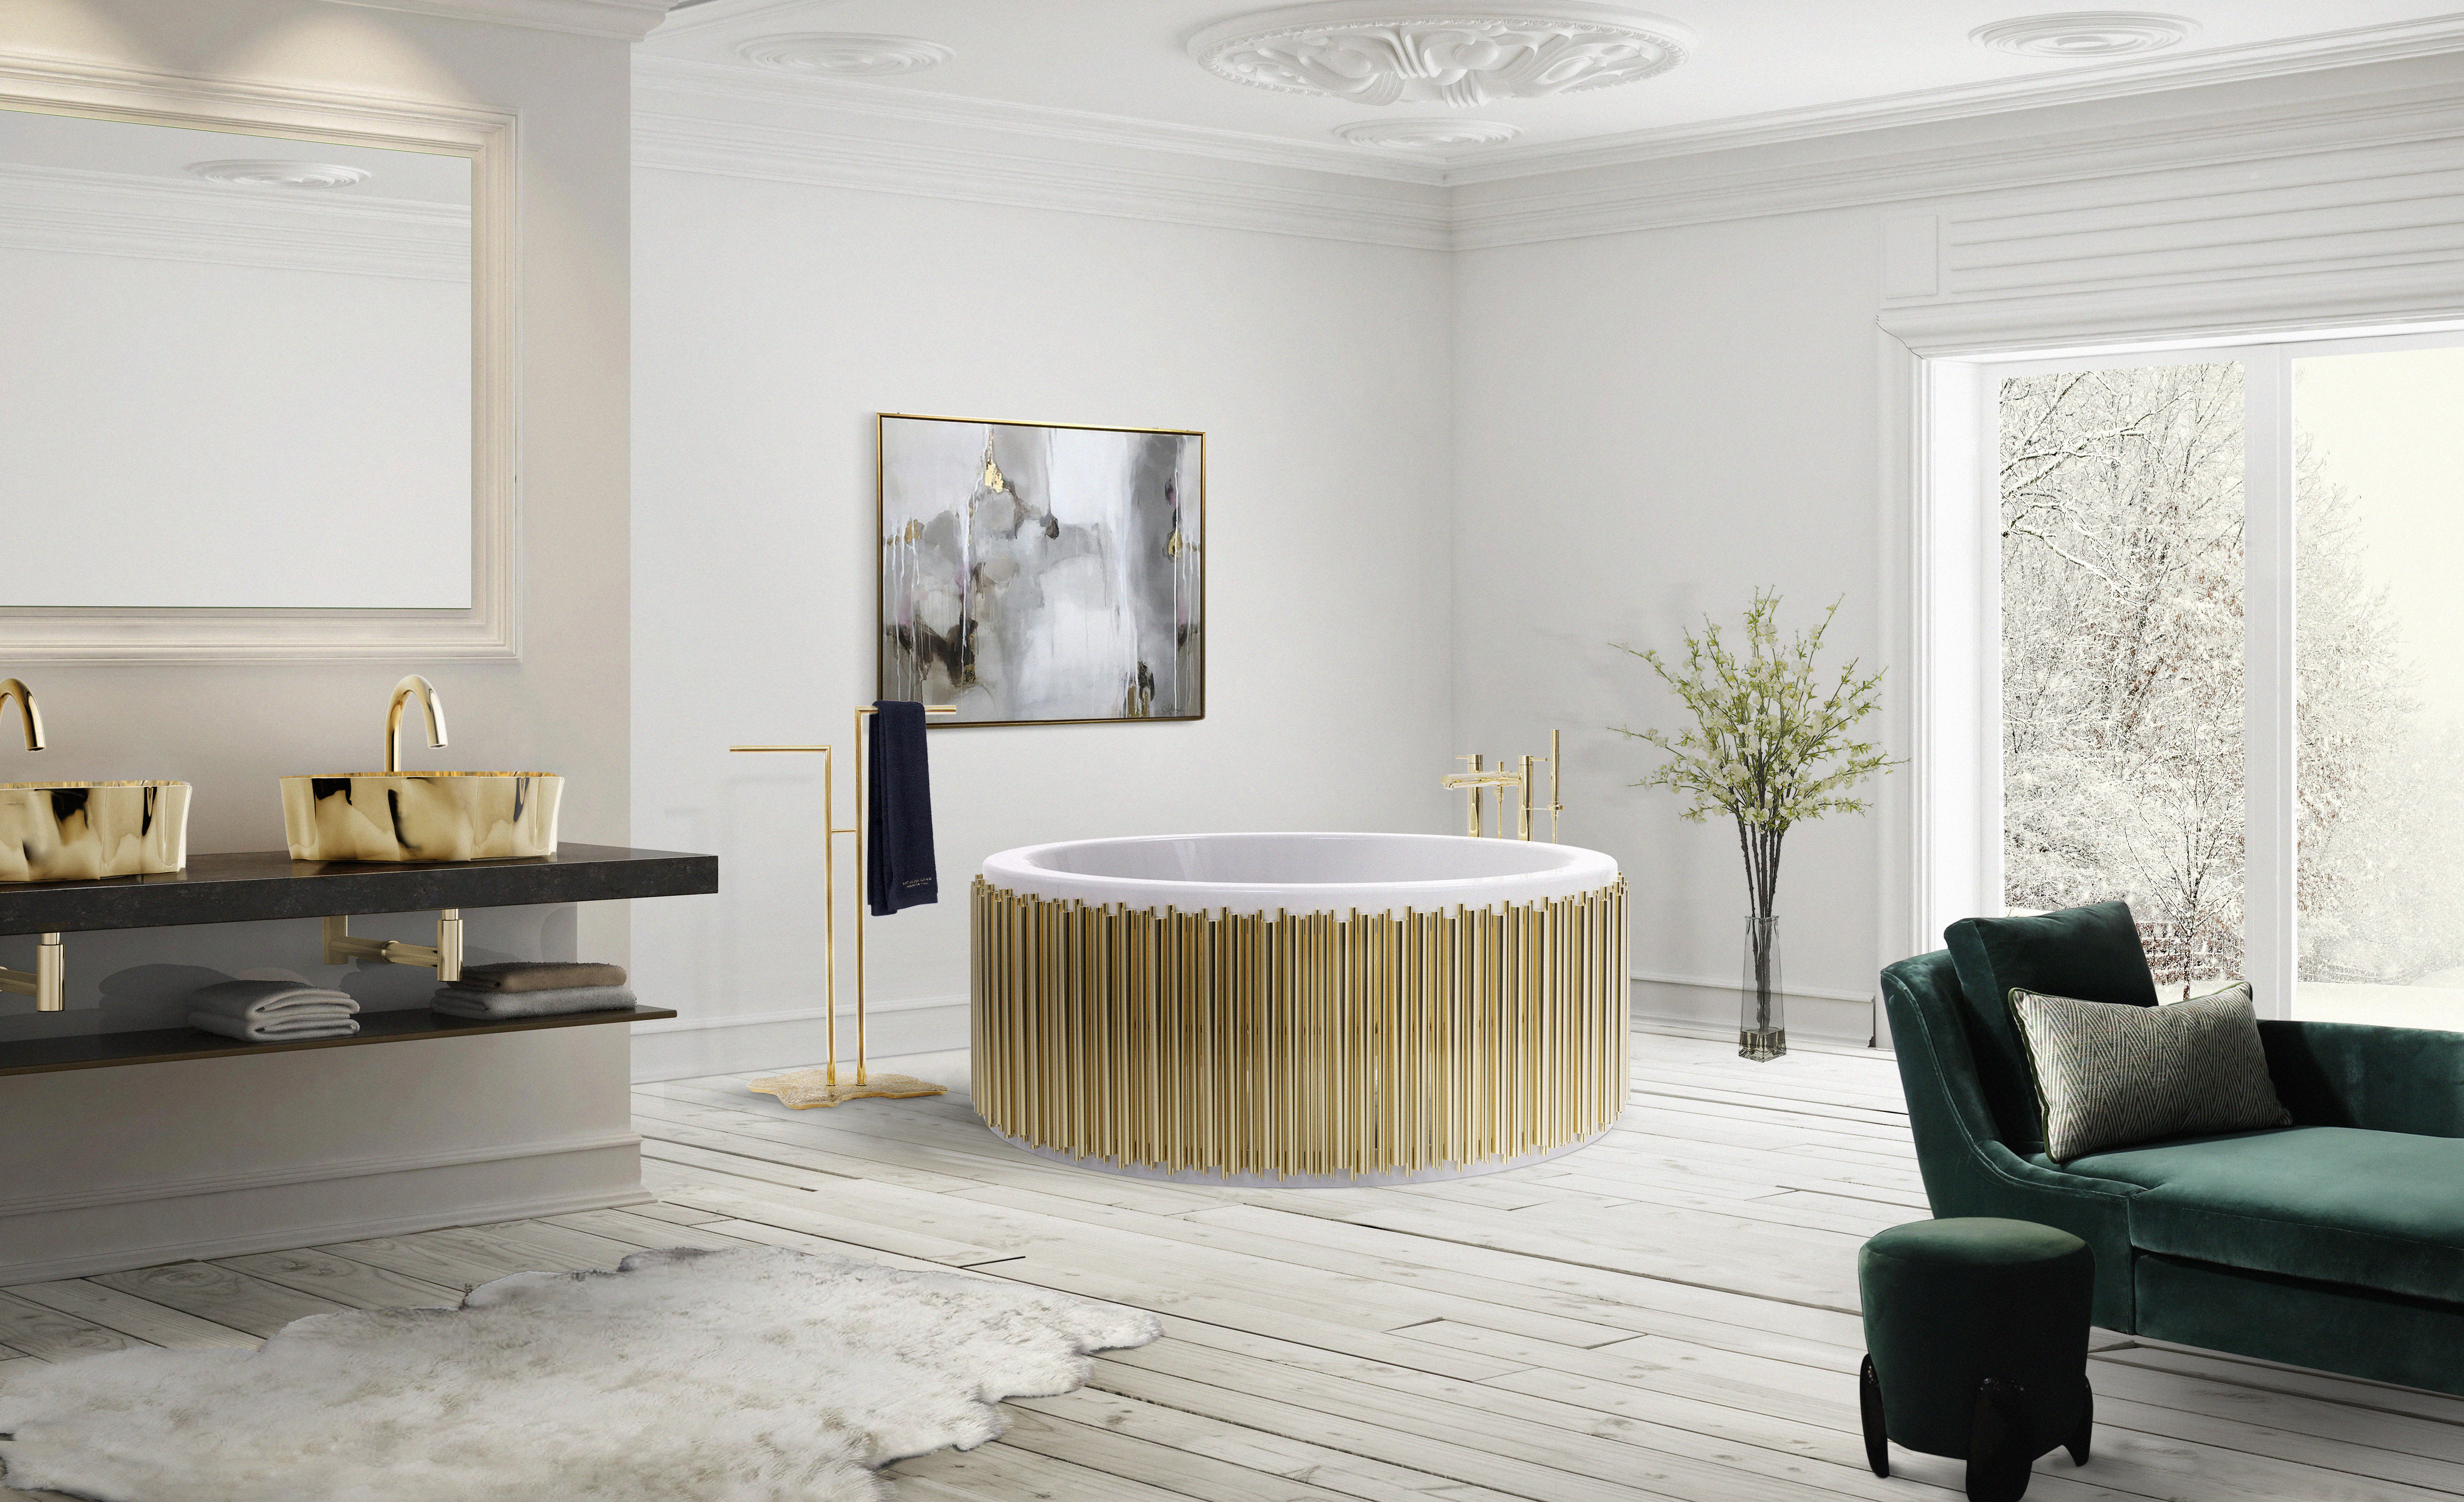 bathtubs 10 Bathtubs To Melt Away The Winter Coldness 56 symphony ambience 1 HR